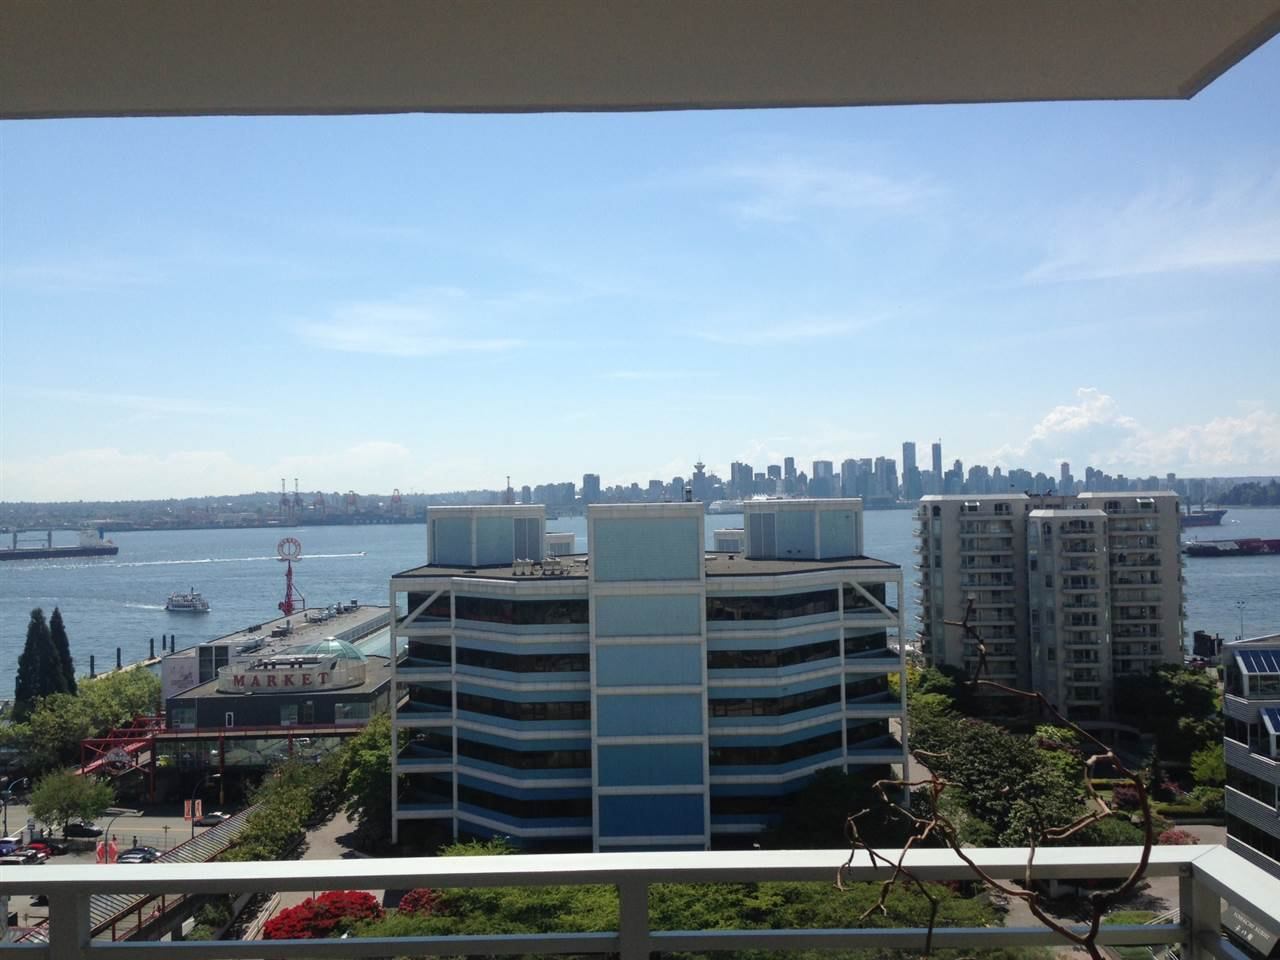 """Main Photo: 1003 155 W 1ST Street in North Vancouver: Lower Lonsdale Condo for sale in """"Time"""" : MLS®# R2081956"""